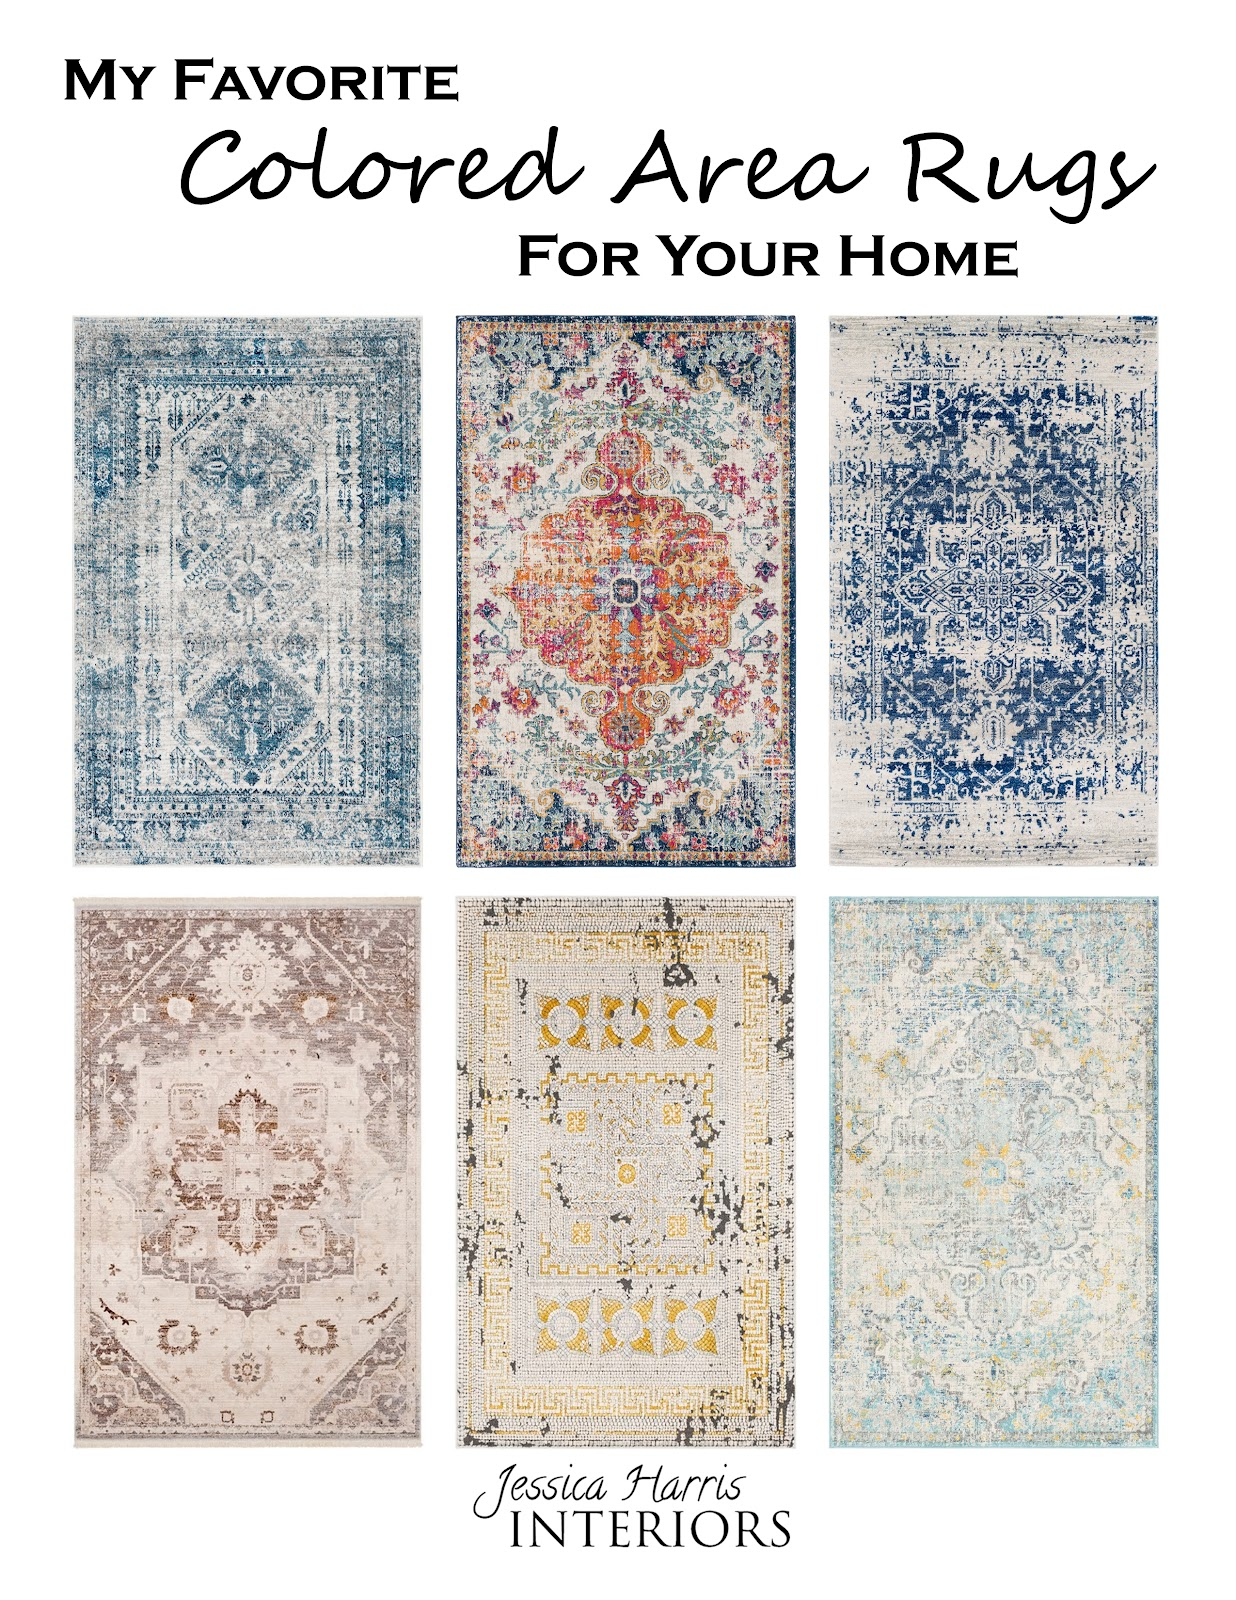 Jessica Harris of Jessica Harris Interiors shares her go-to guide to help ease the burden and provide you with tips to help you find the perfect area rug for you home.